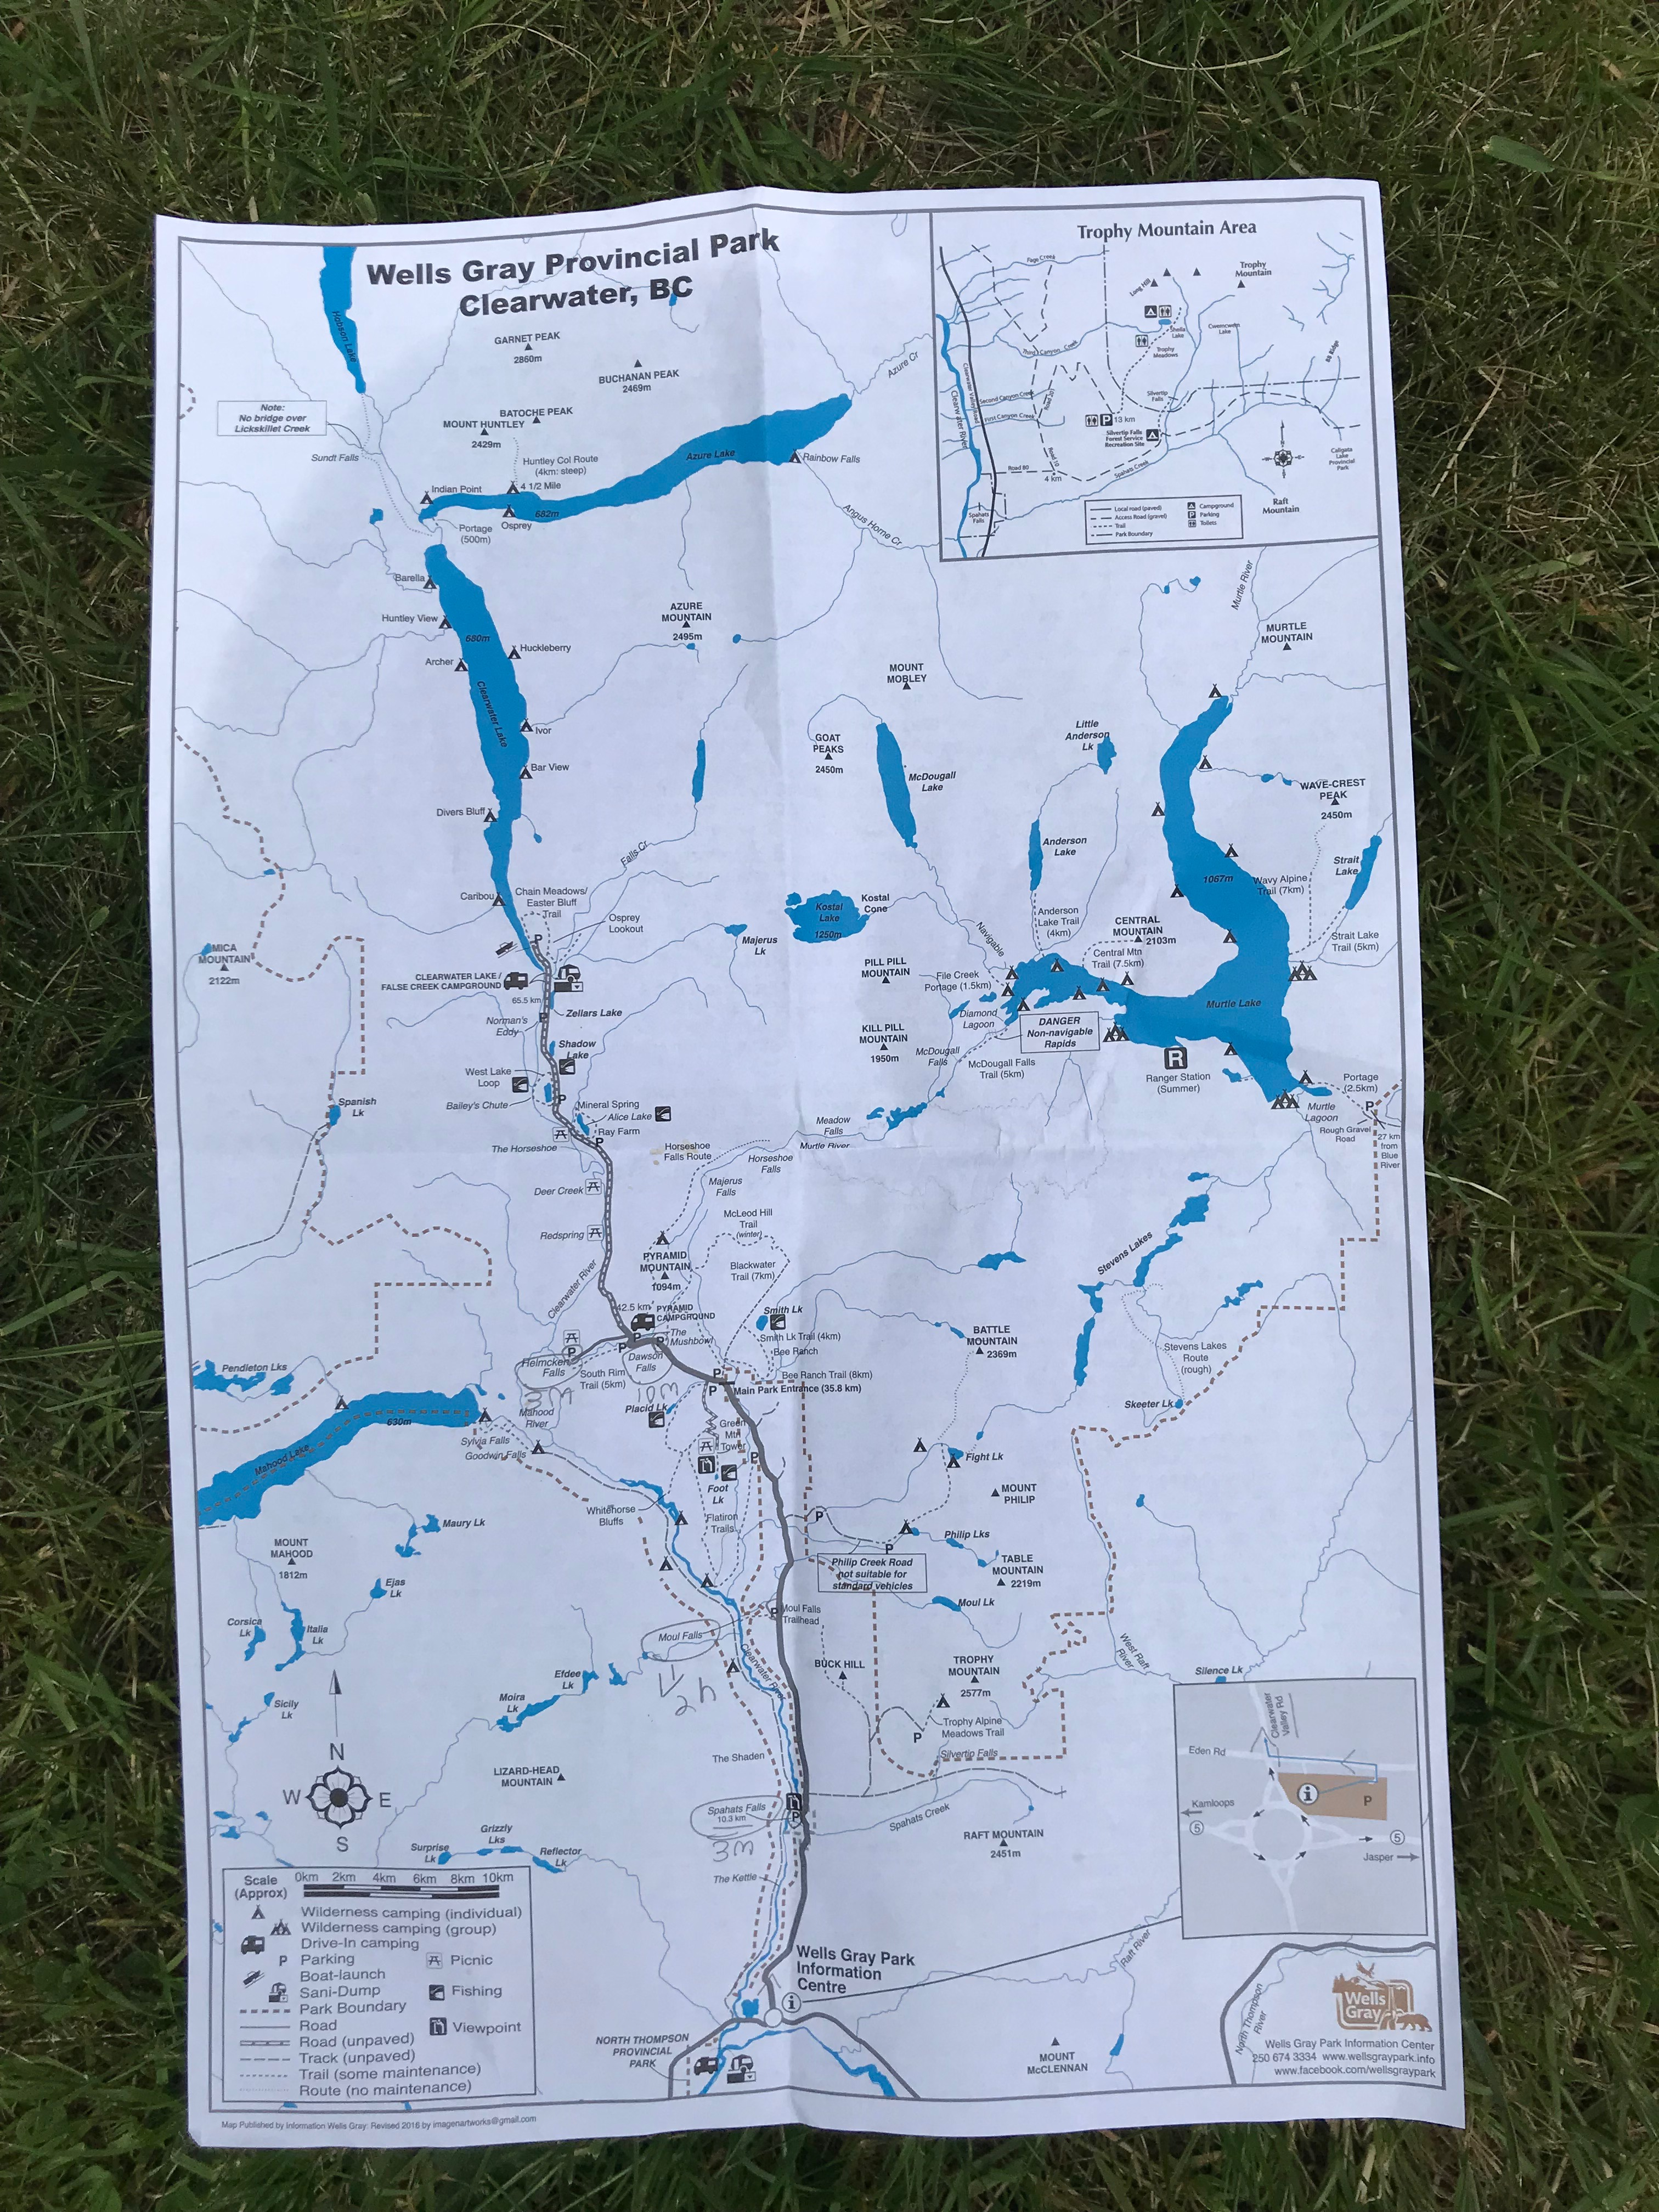 wells gray park map